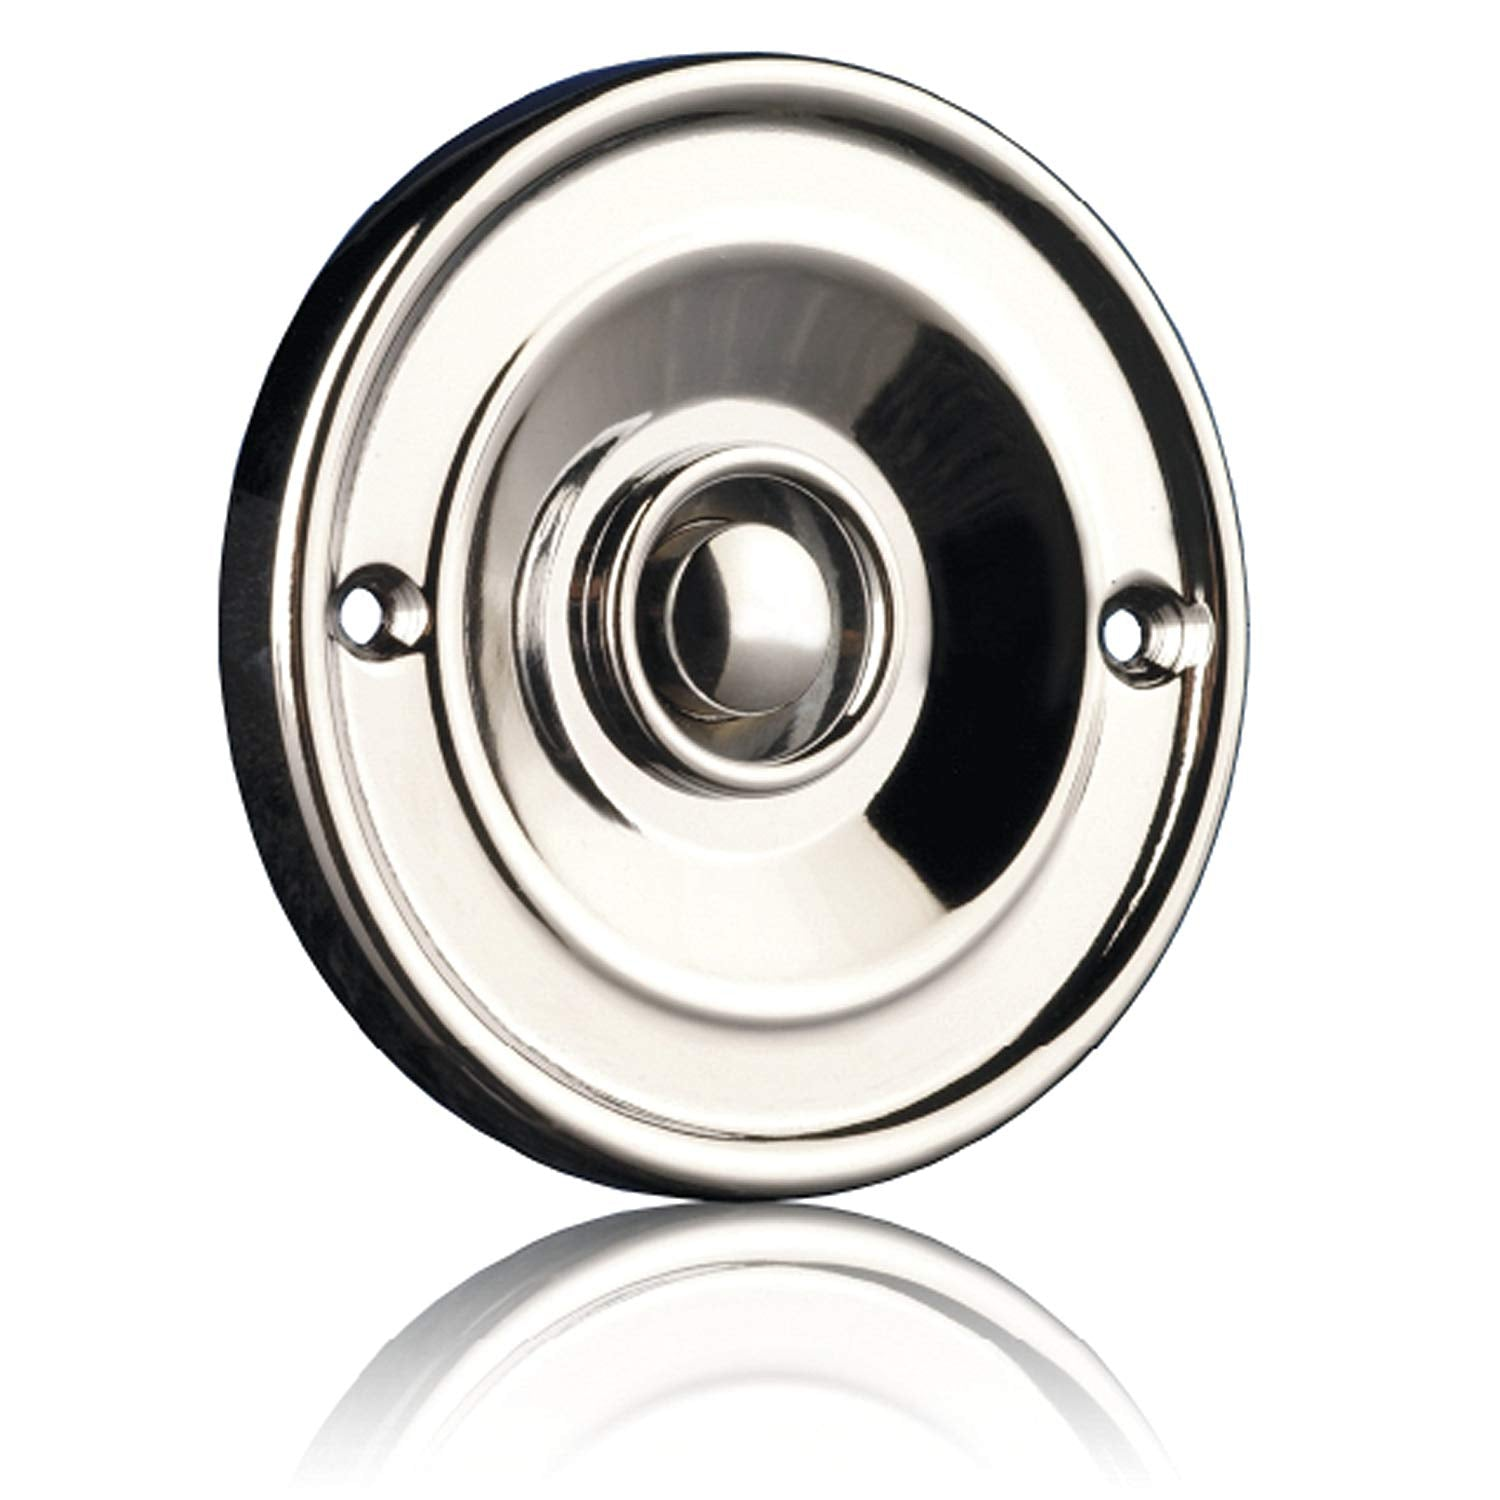 Byron 2207C Bell Push – Flush mounted – Chrome finish